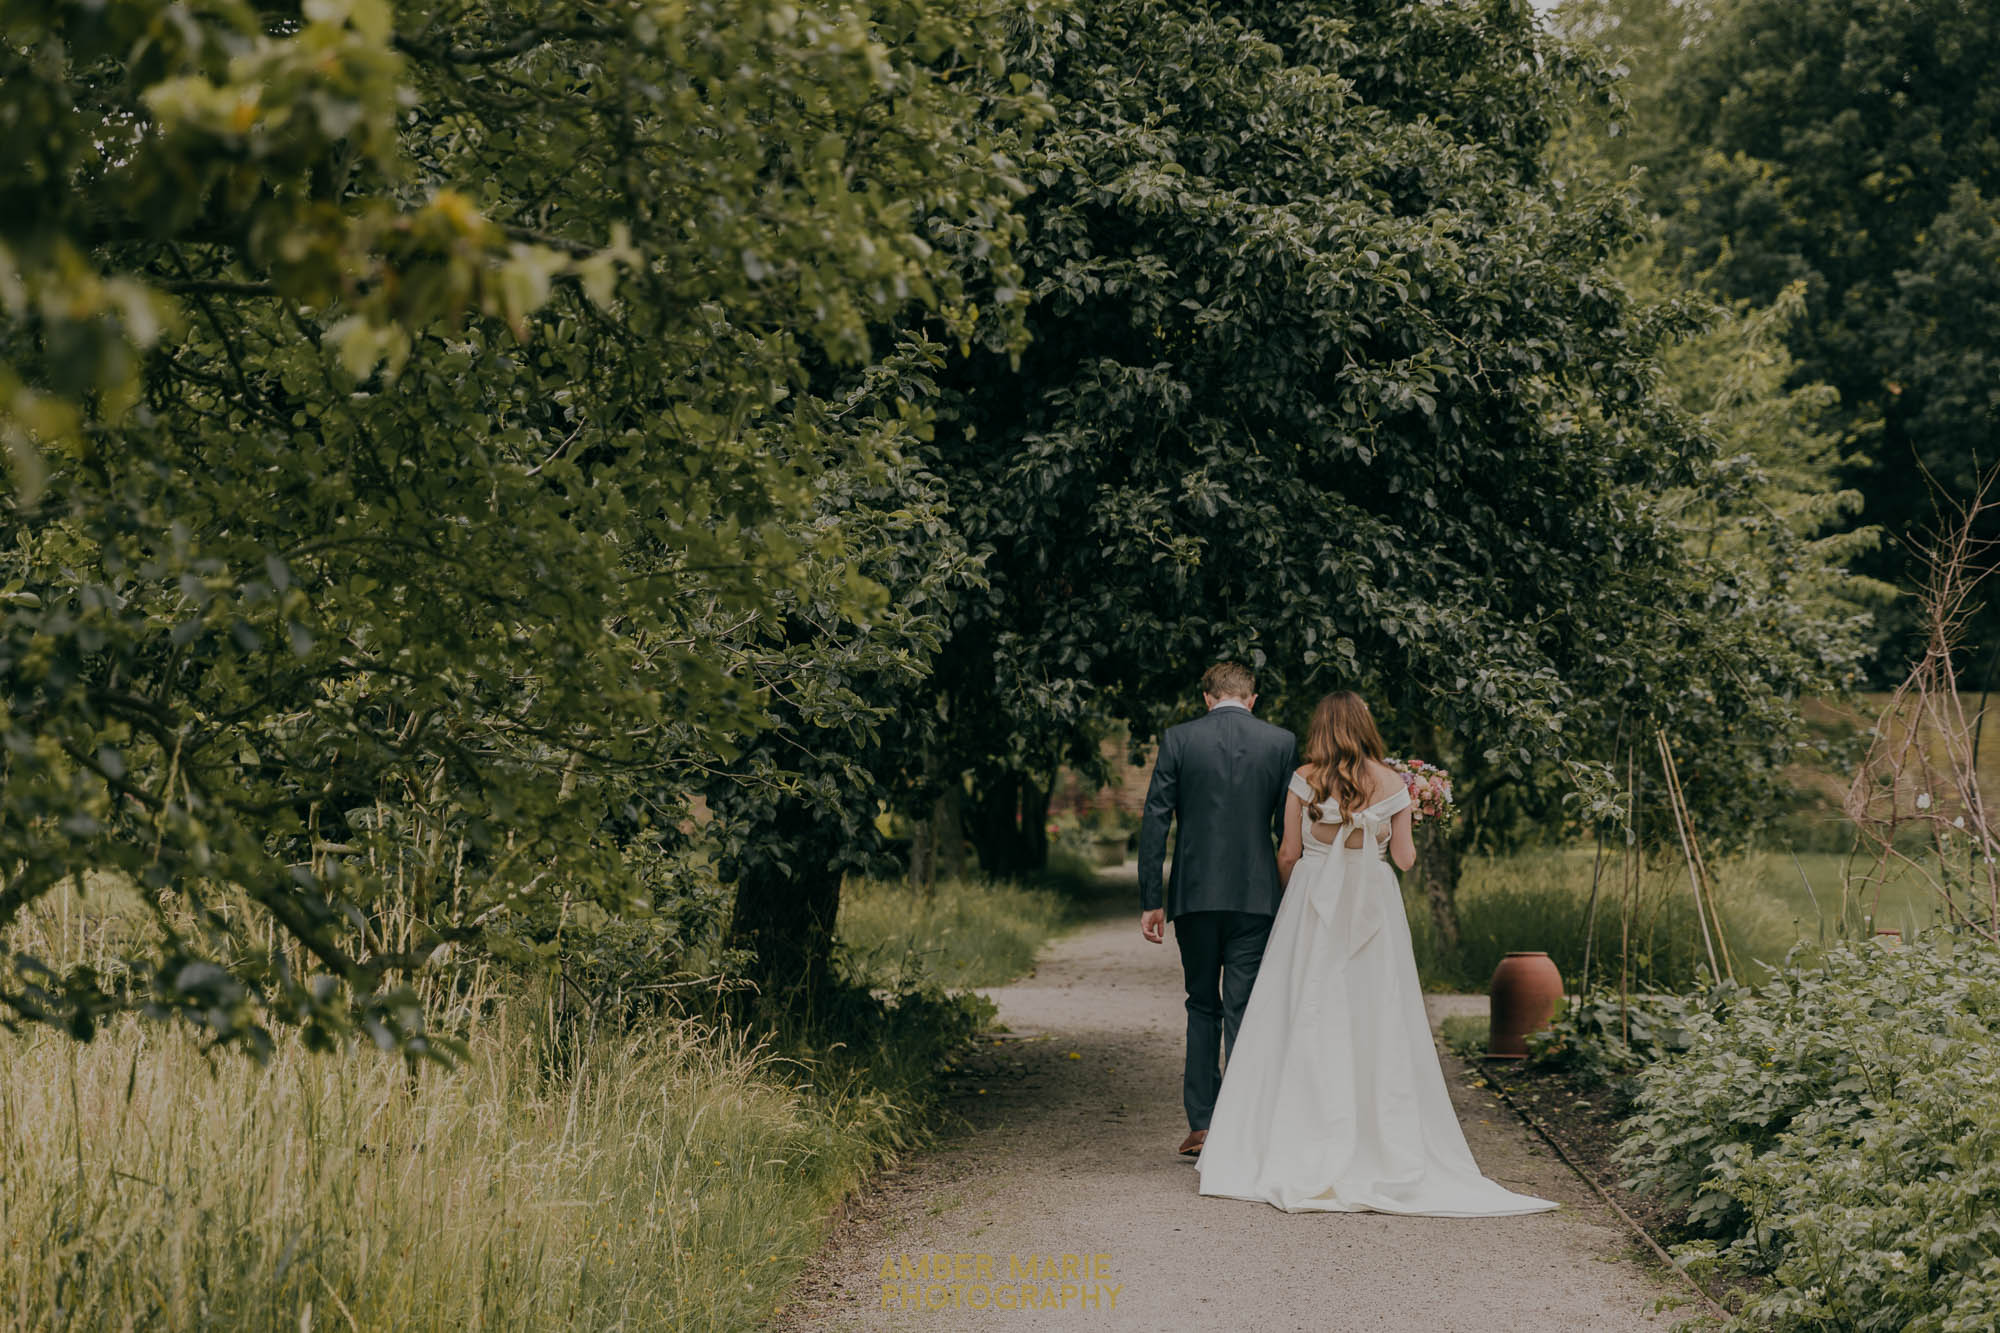 Bride and groom walking through walled garden at Fulham Palace wedding